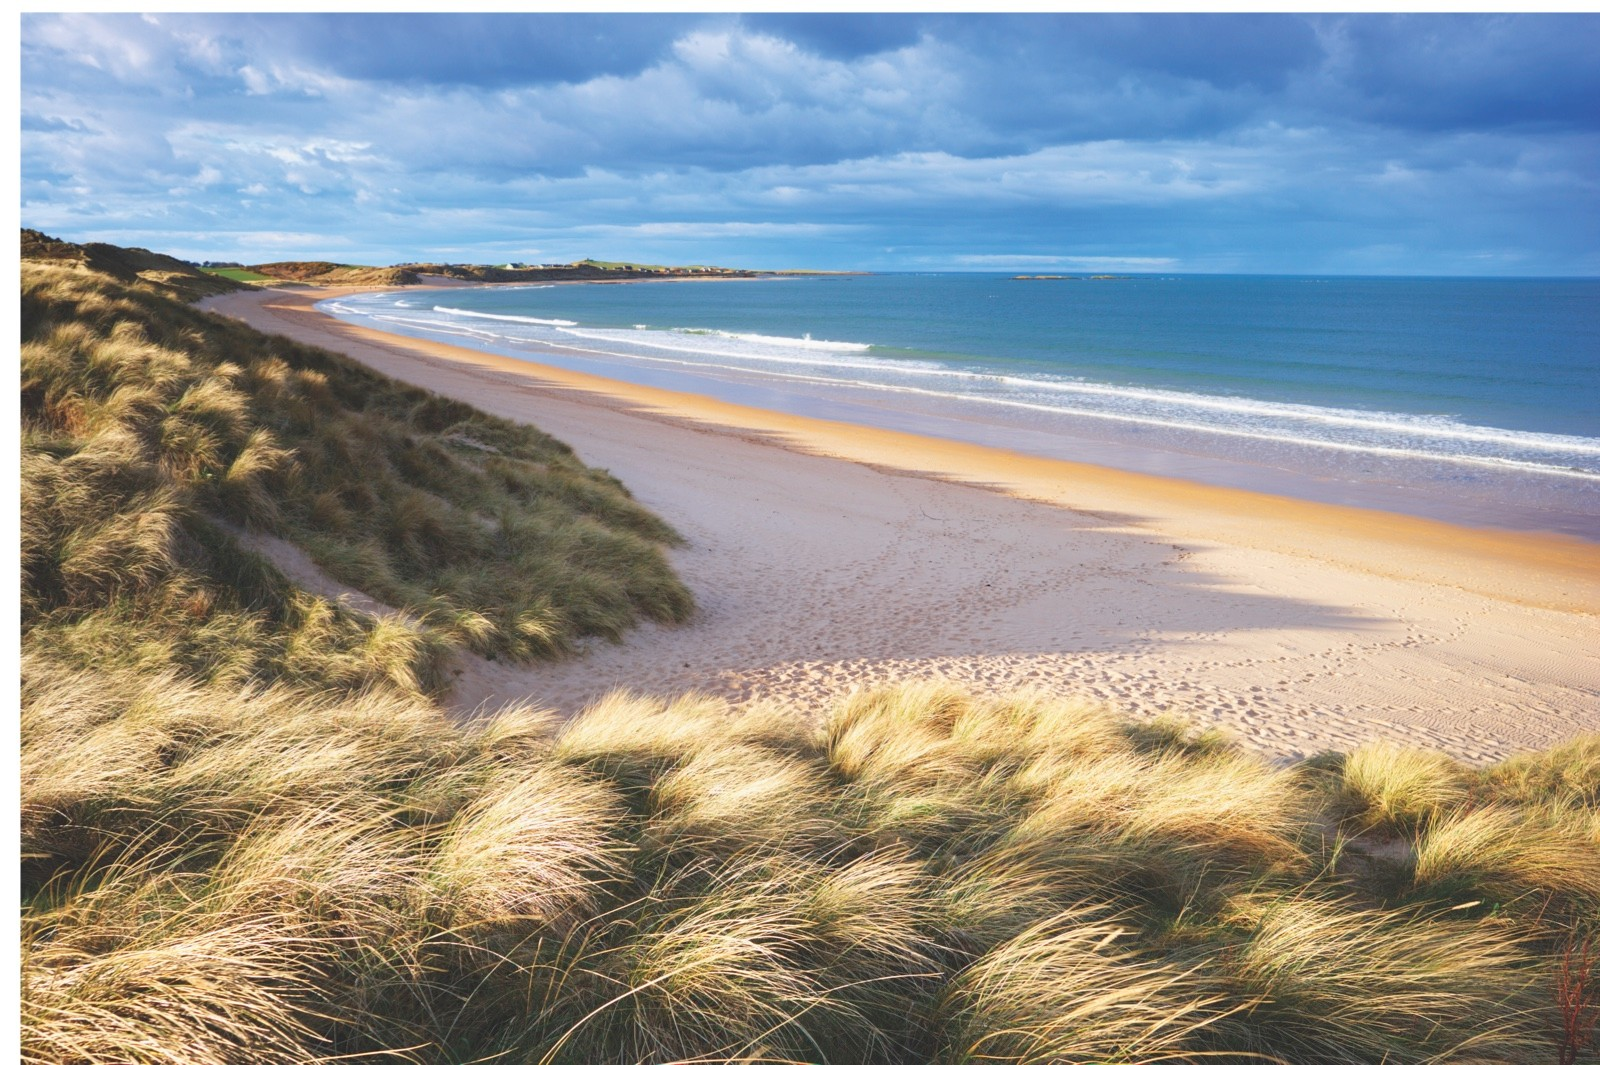 600-05803635 © Tim Hurst Model Release: No Property Release: No  Grass Covered Dunes and Sandy Beach of Embleton Bay, Northumberland, England